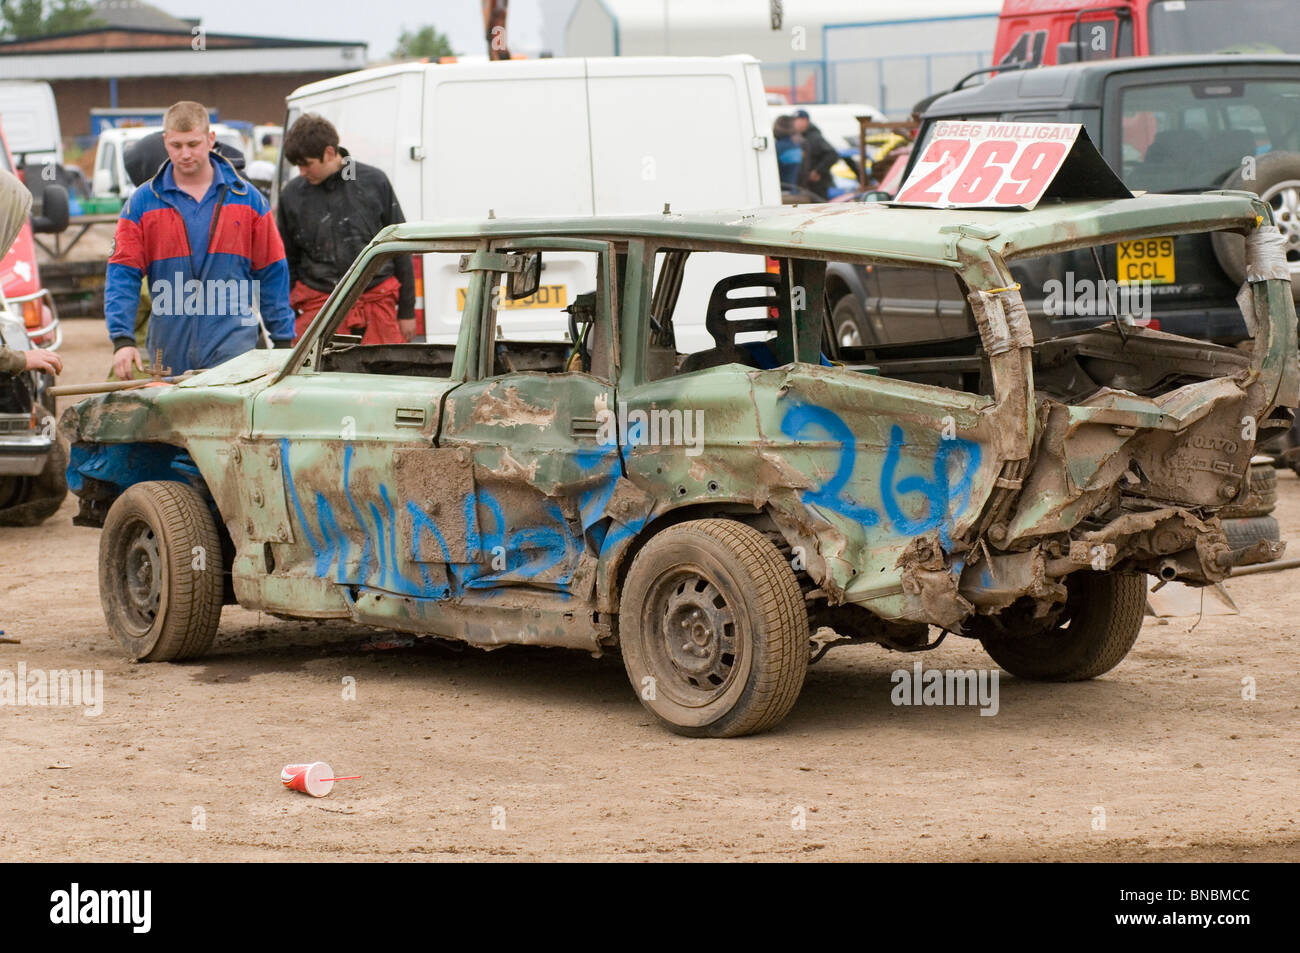 banger racing mechanic driver hitting scrap junk old car with sledgehammer sledge hammer repair repairing maintenance - Stock Image